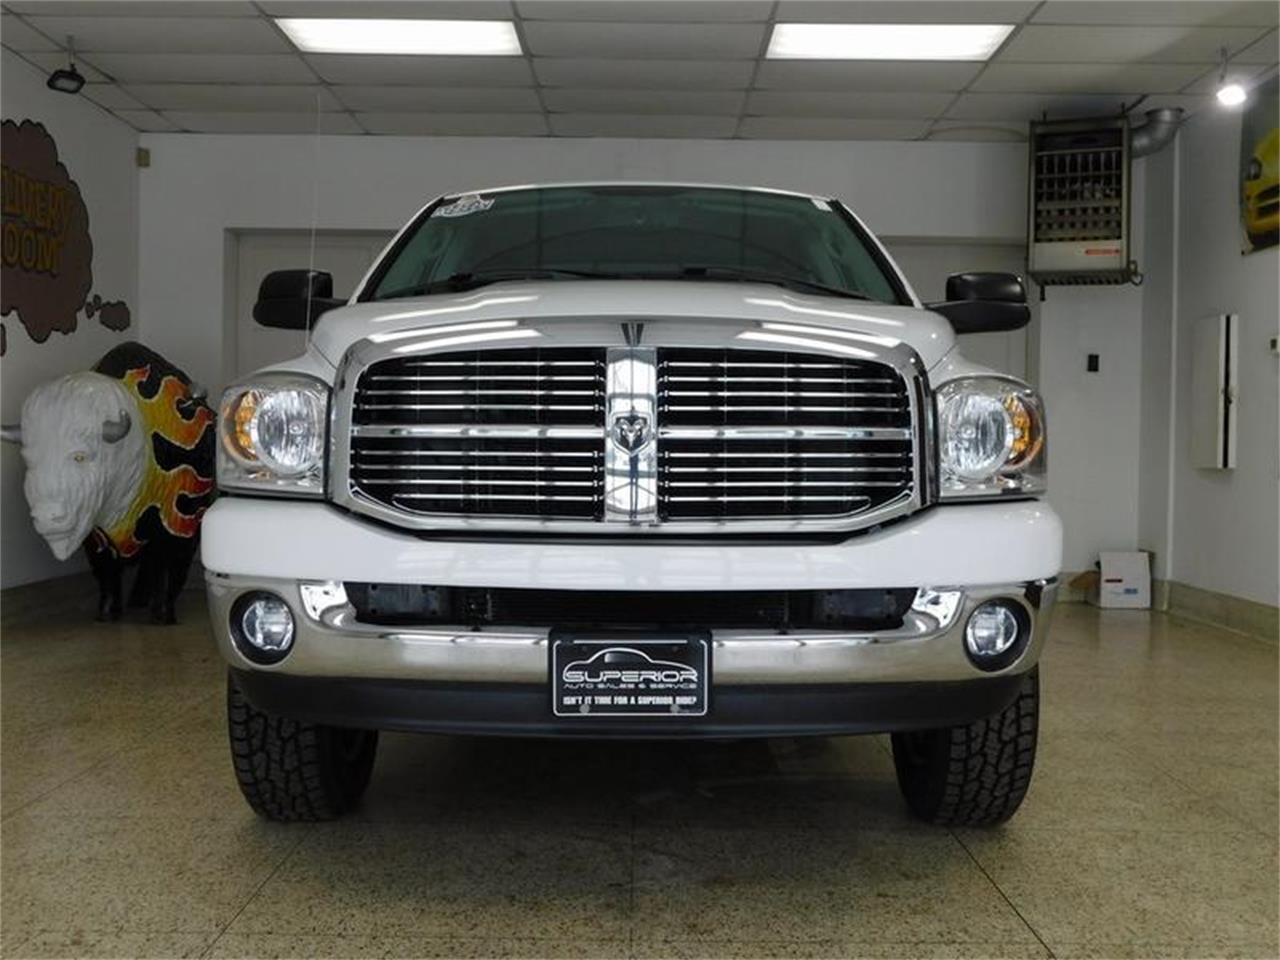 2009 Dodge Ram 3500 for sale in Hamburg, NY – photo 32